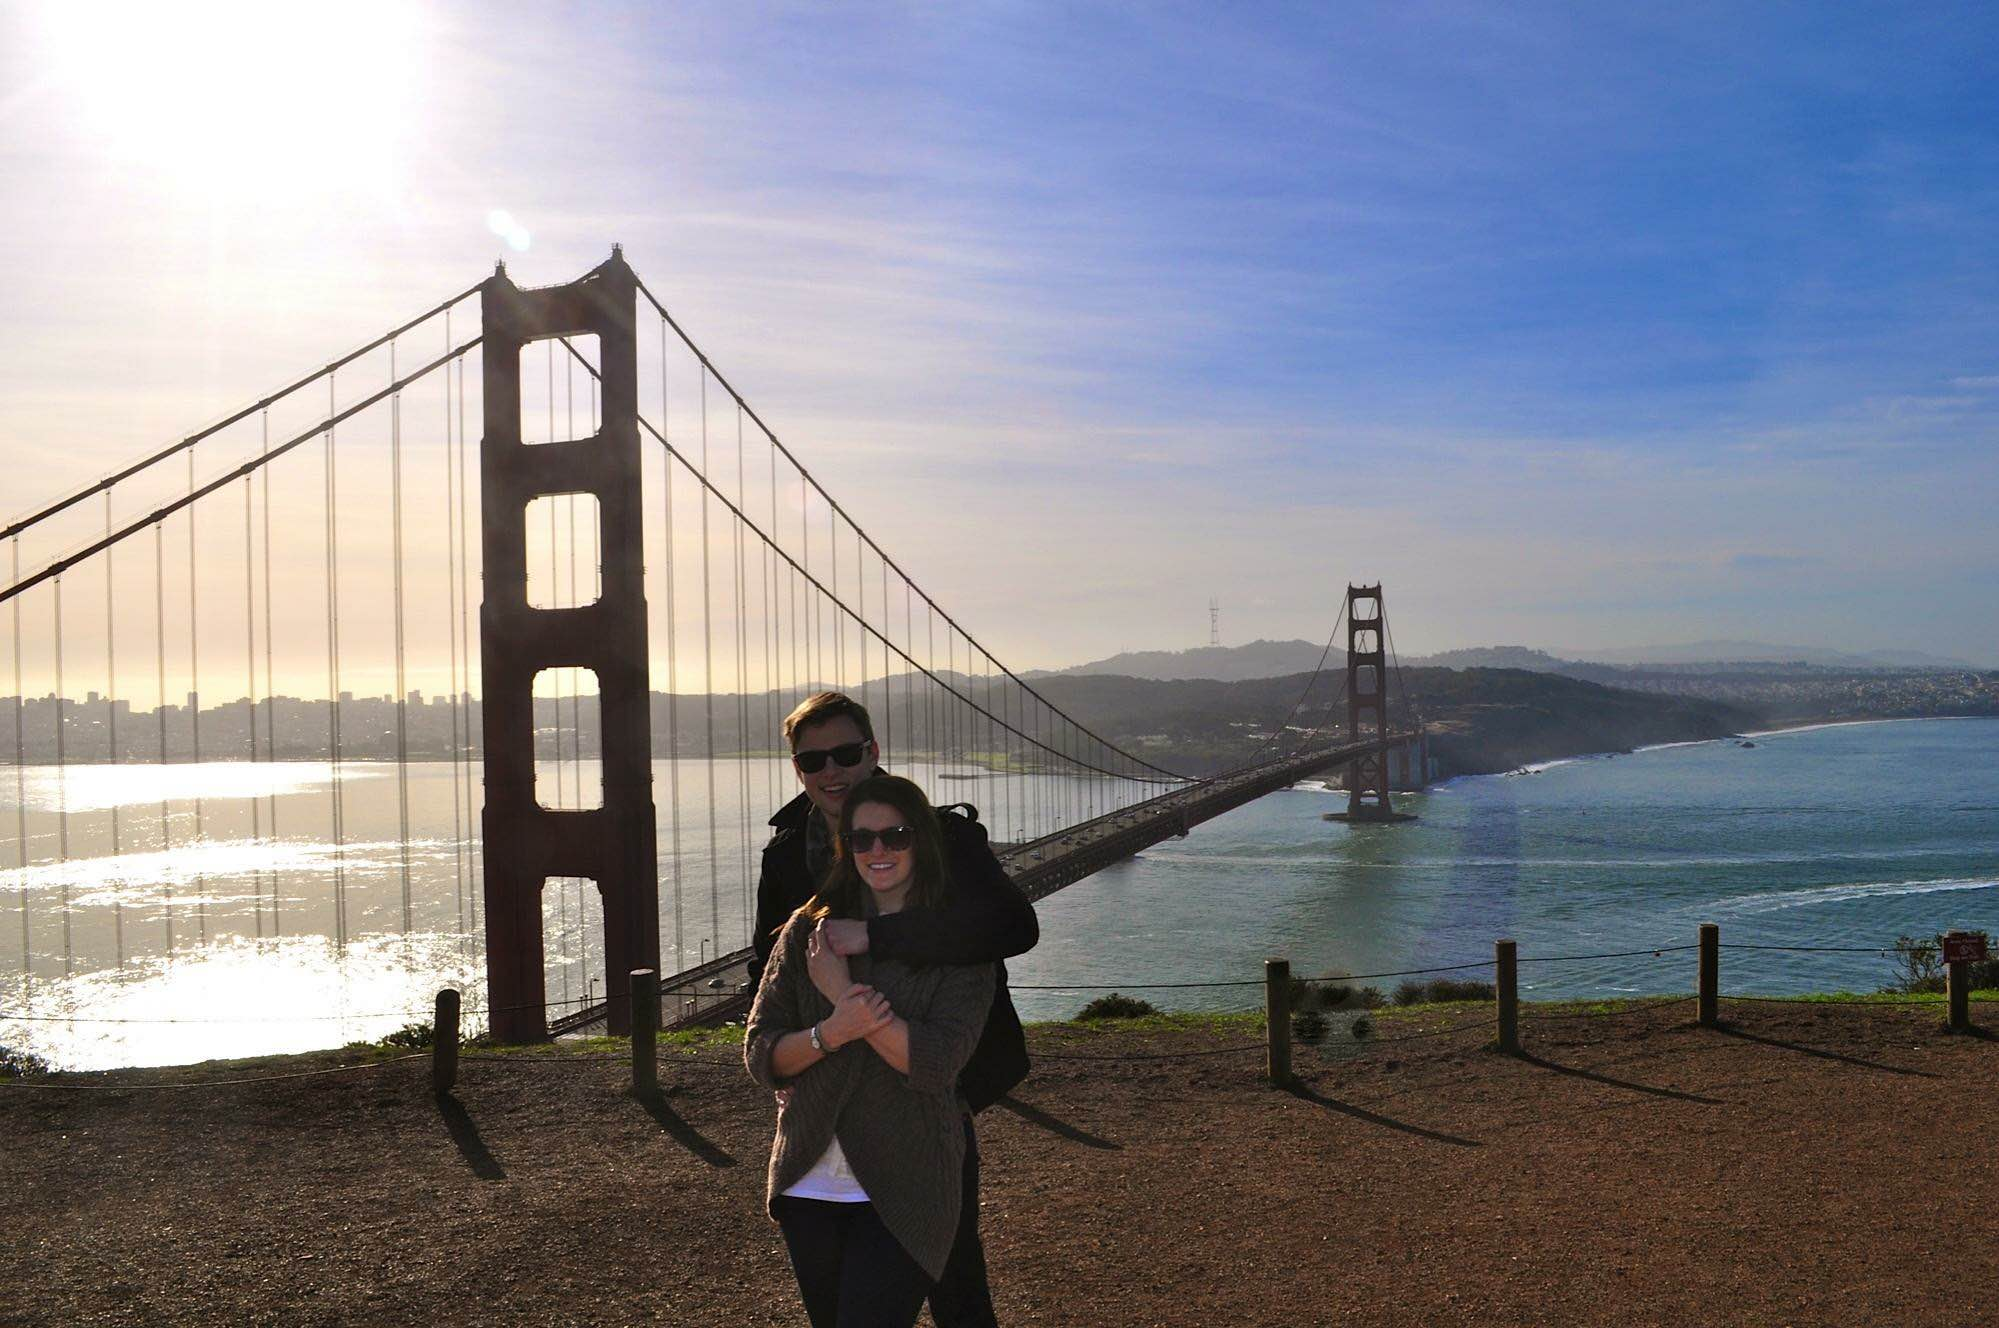 The best place for a photo of the Golden Gate Bridge, Battery Spencer.